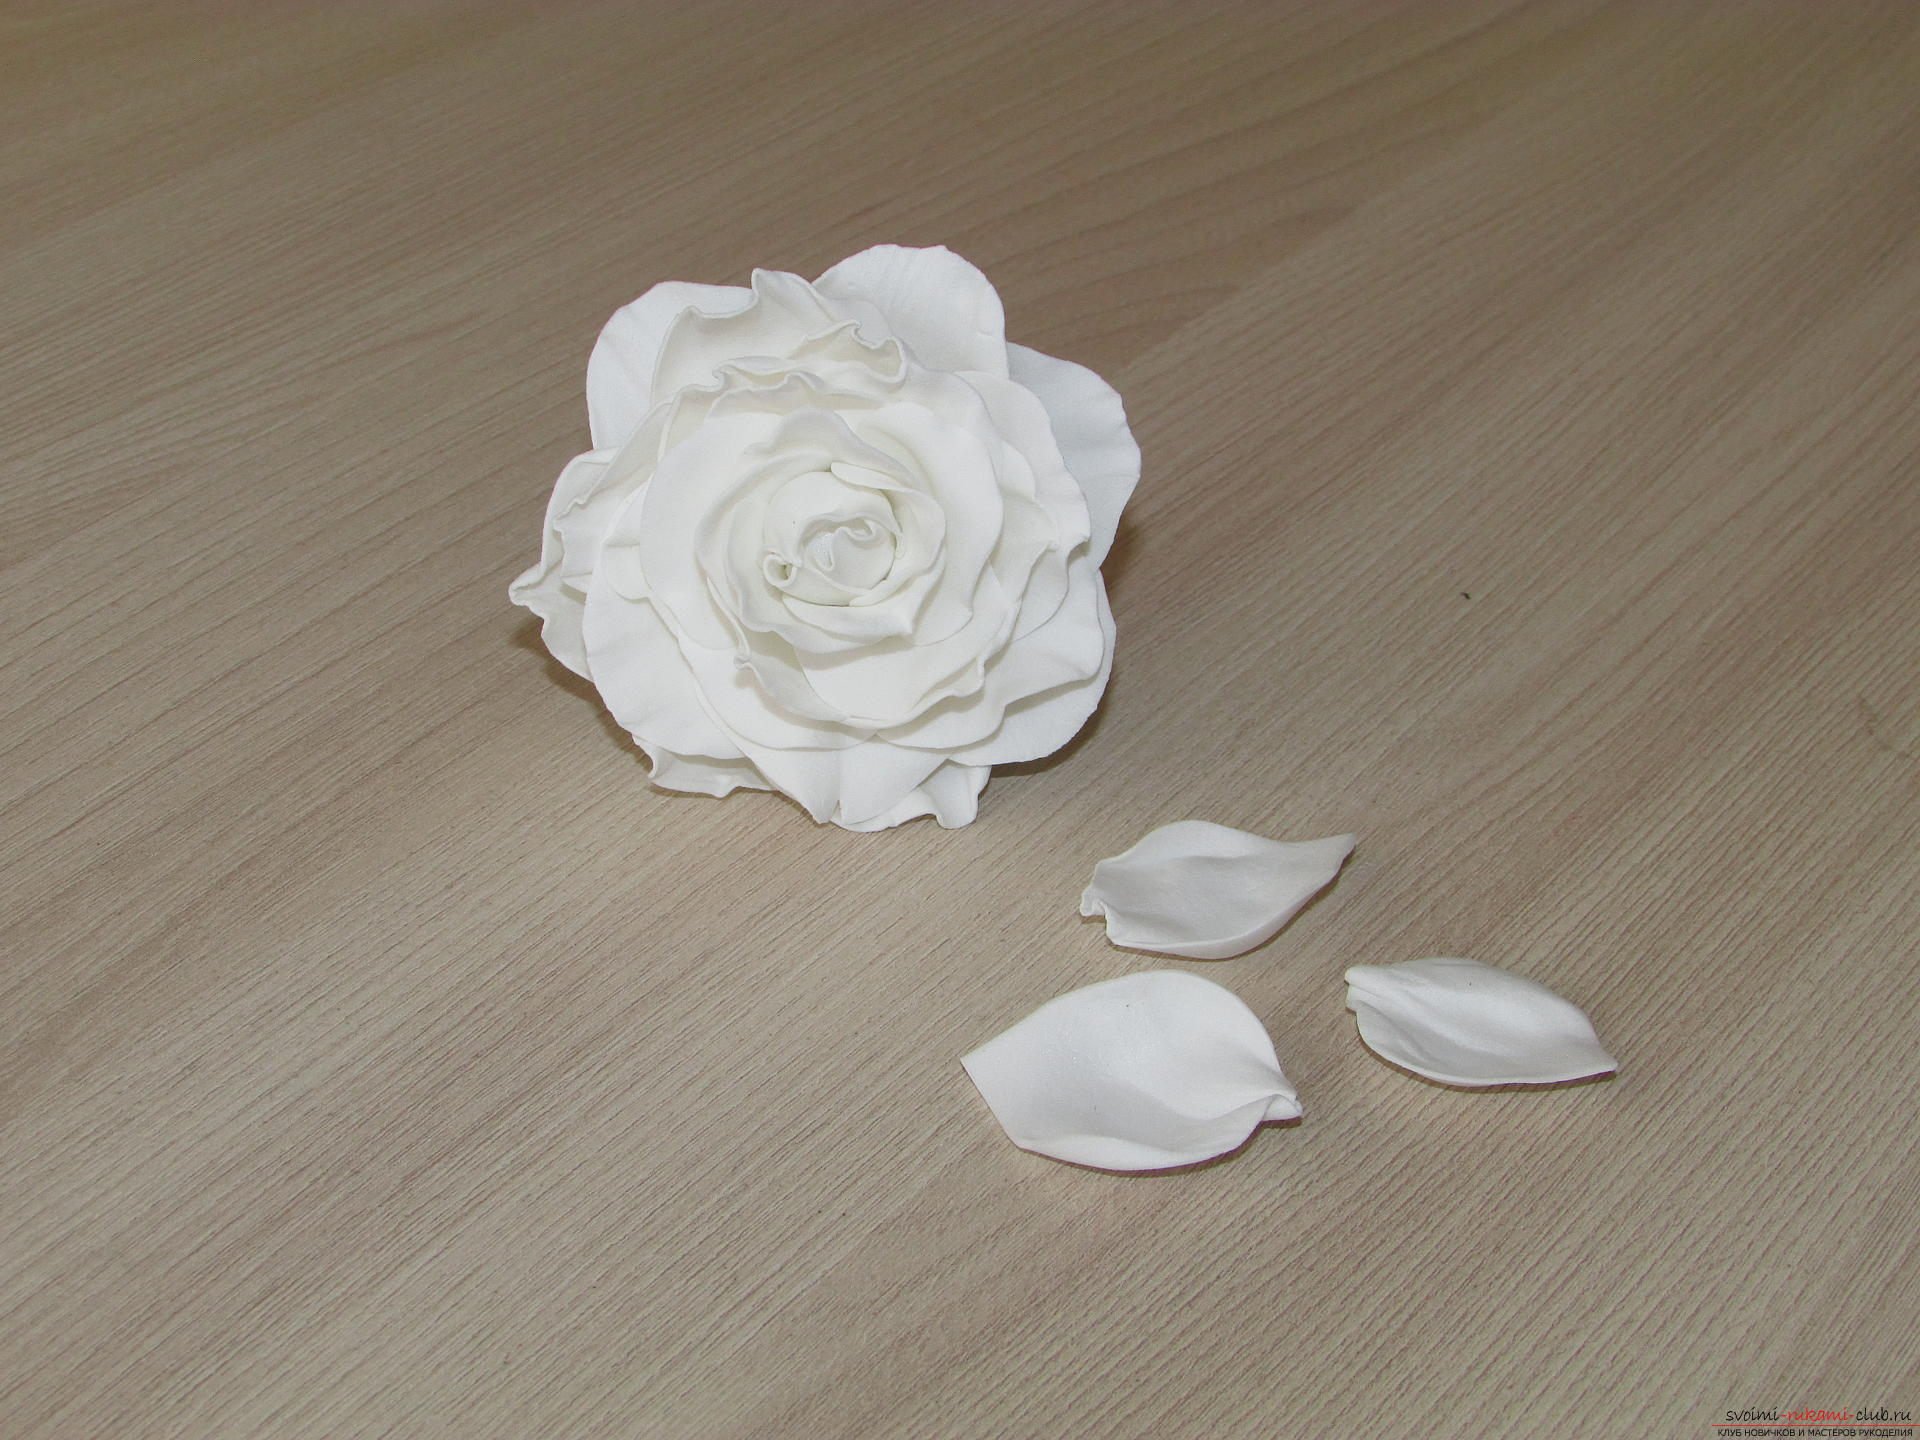 This detailed master-class of flowers from foamiran tells how to make a white rose .. Photo №10